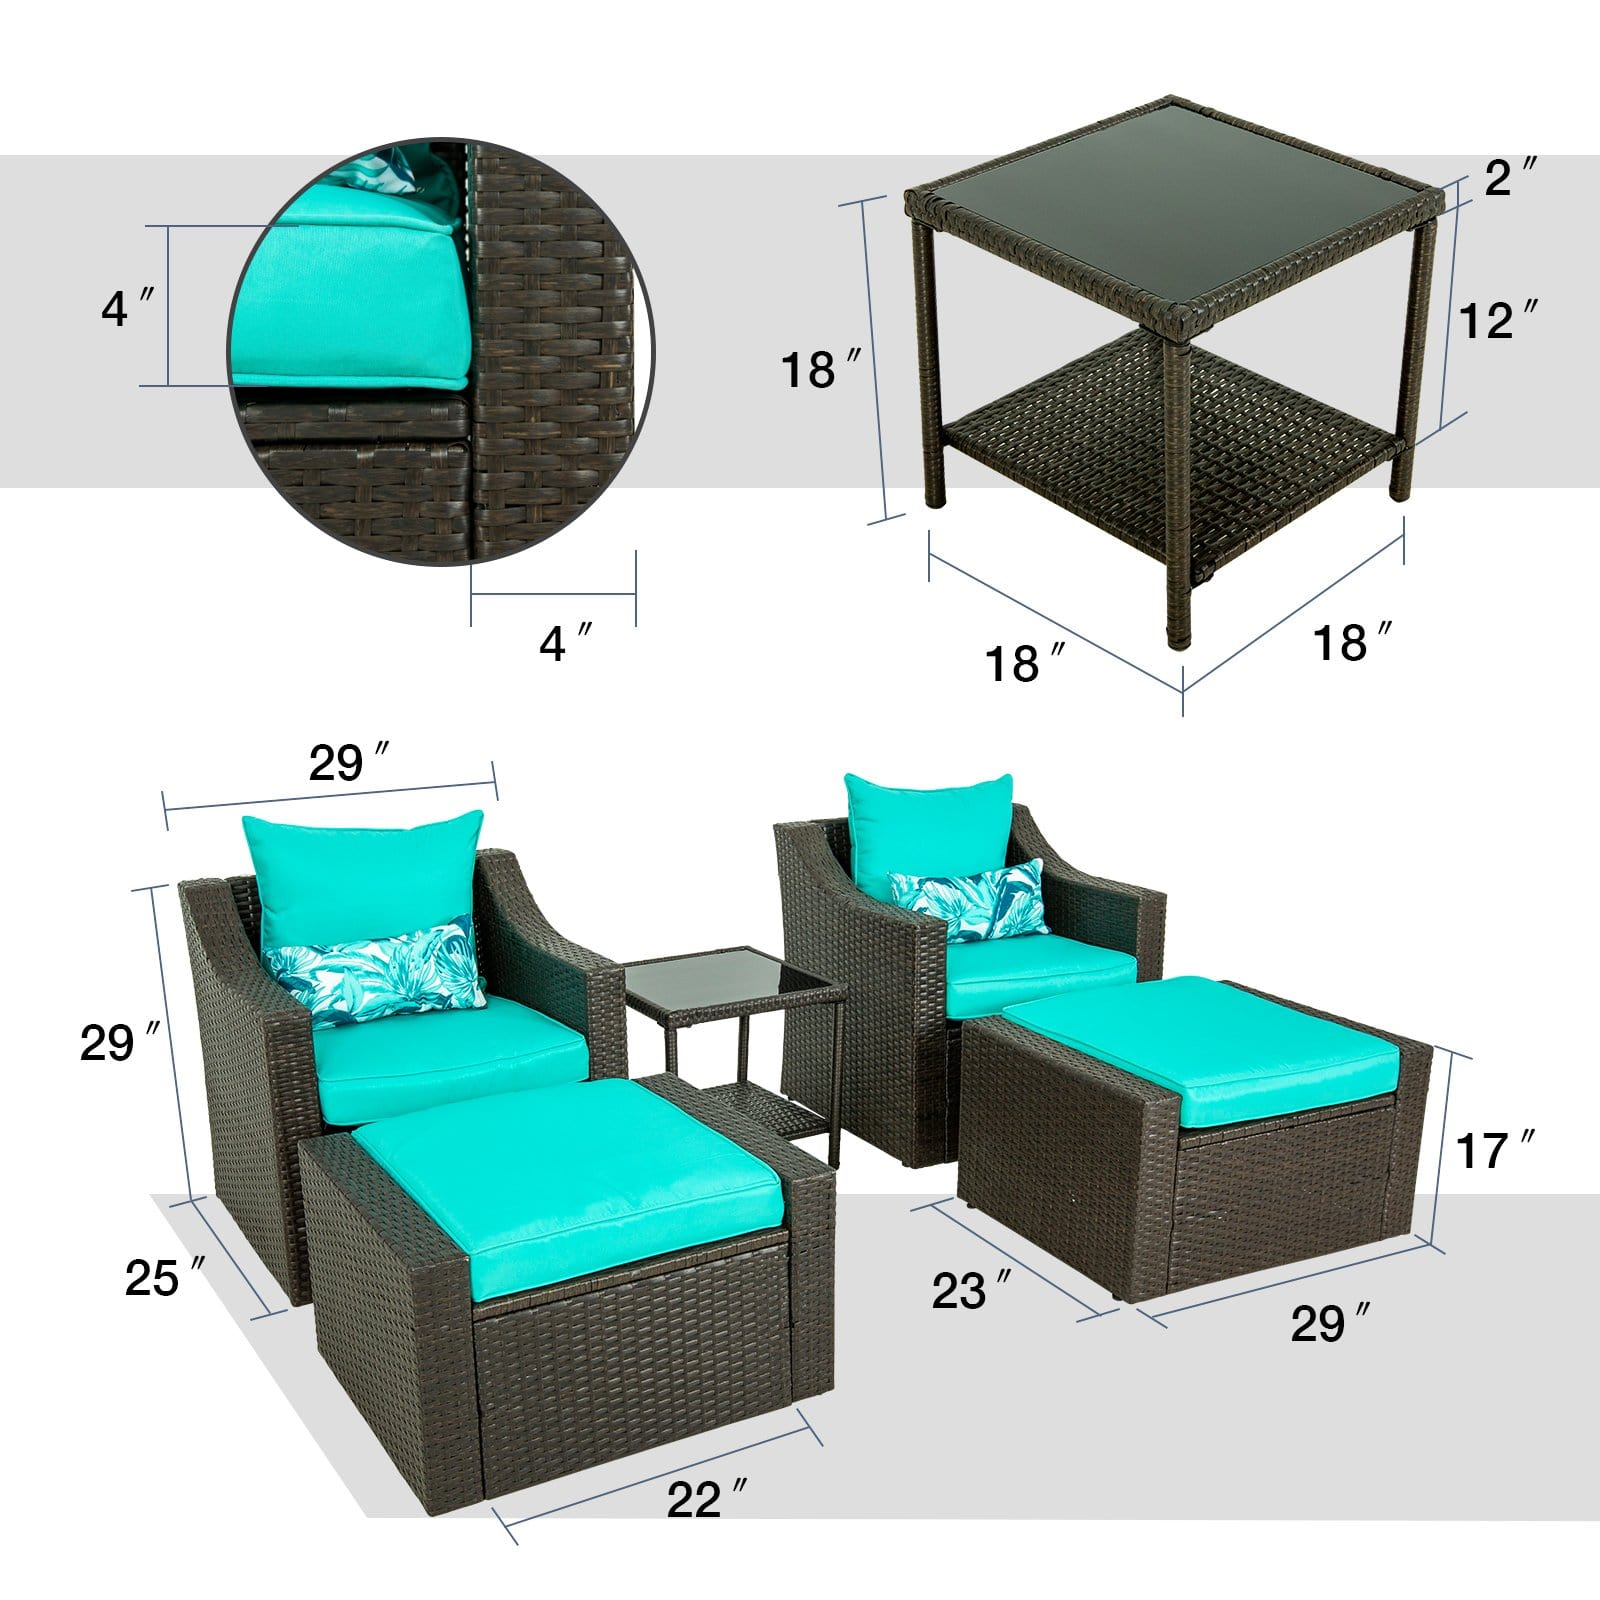 PULUOMIS 5 Piece Patio Furniture Set, Solid Material and Premium Cushion Covers, Widely Use